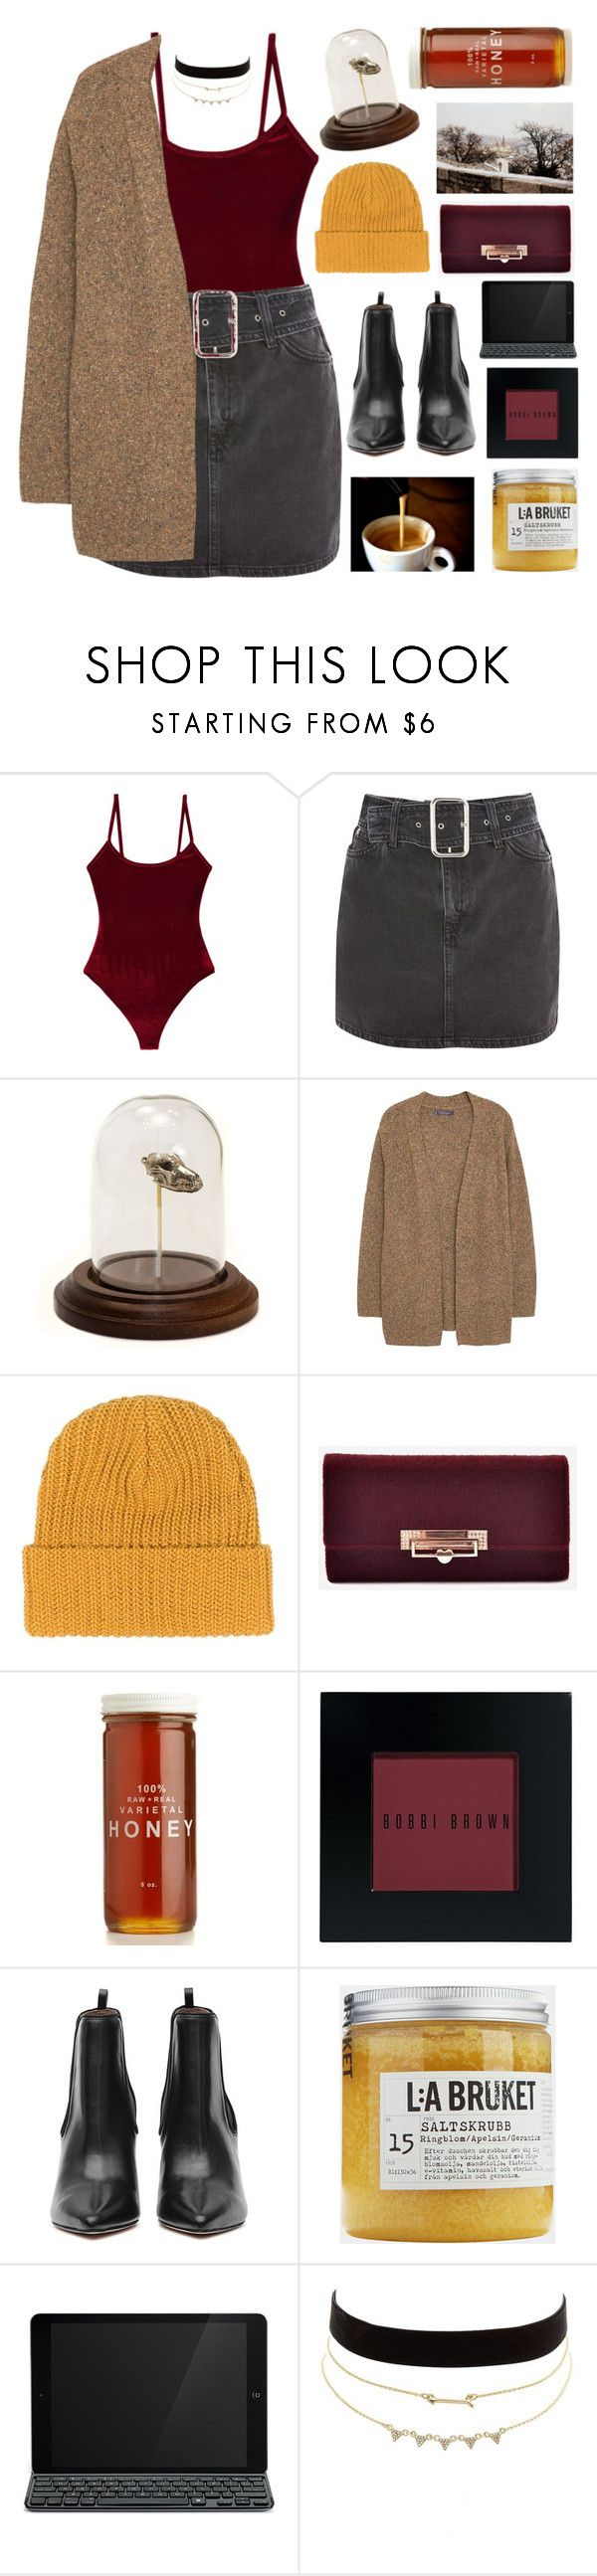 """""""Untitled #3065"""" by tacoxcat ❤ liked on Polyvore featuring Alix, Topshop, Violeta by Mango, Bobbi Brown Cosmetics, Toast, Logitech and Charlotte Russe"""